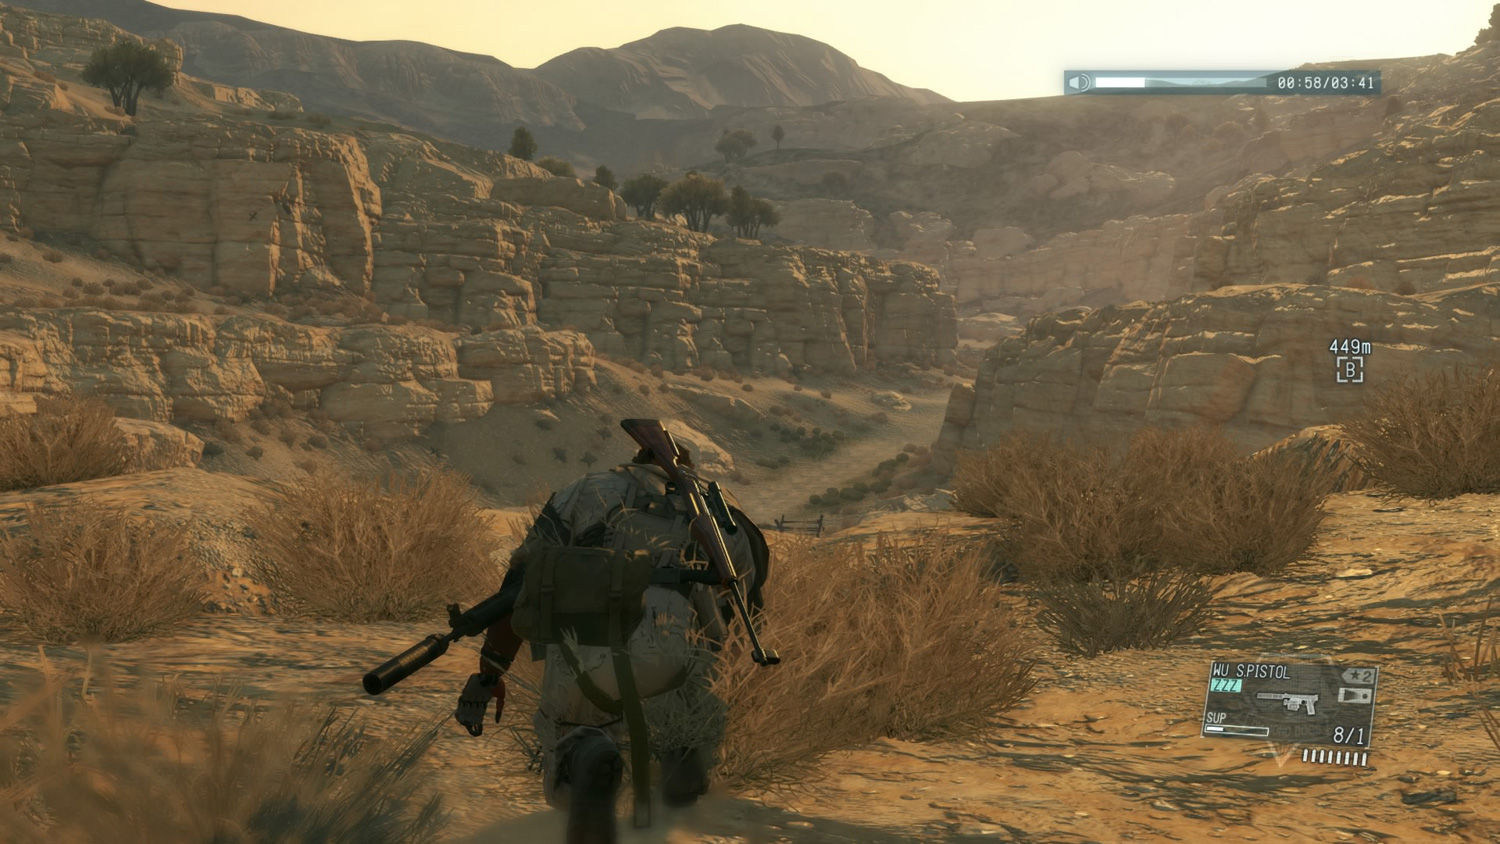 Metal-Gear-Solid-V-The-Phantom-Pain-Afghanistan-View